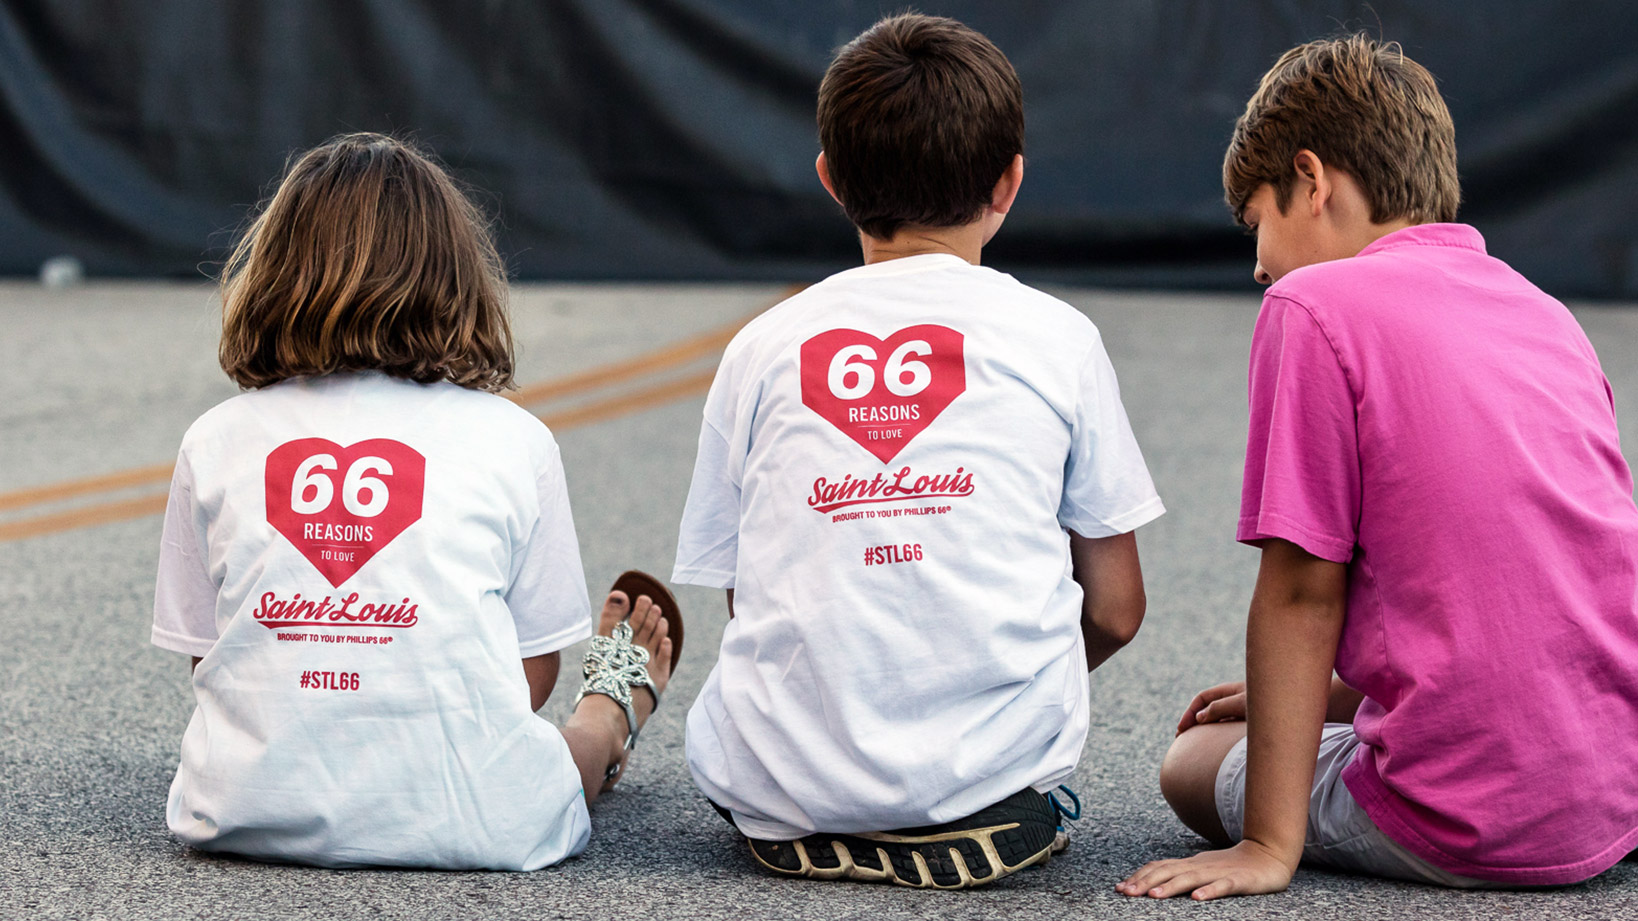 Phillips 66 Reasons T-shirts